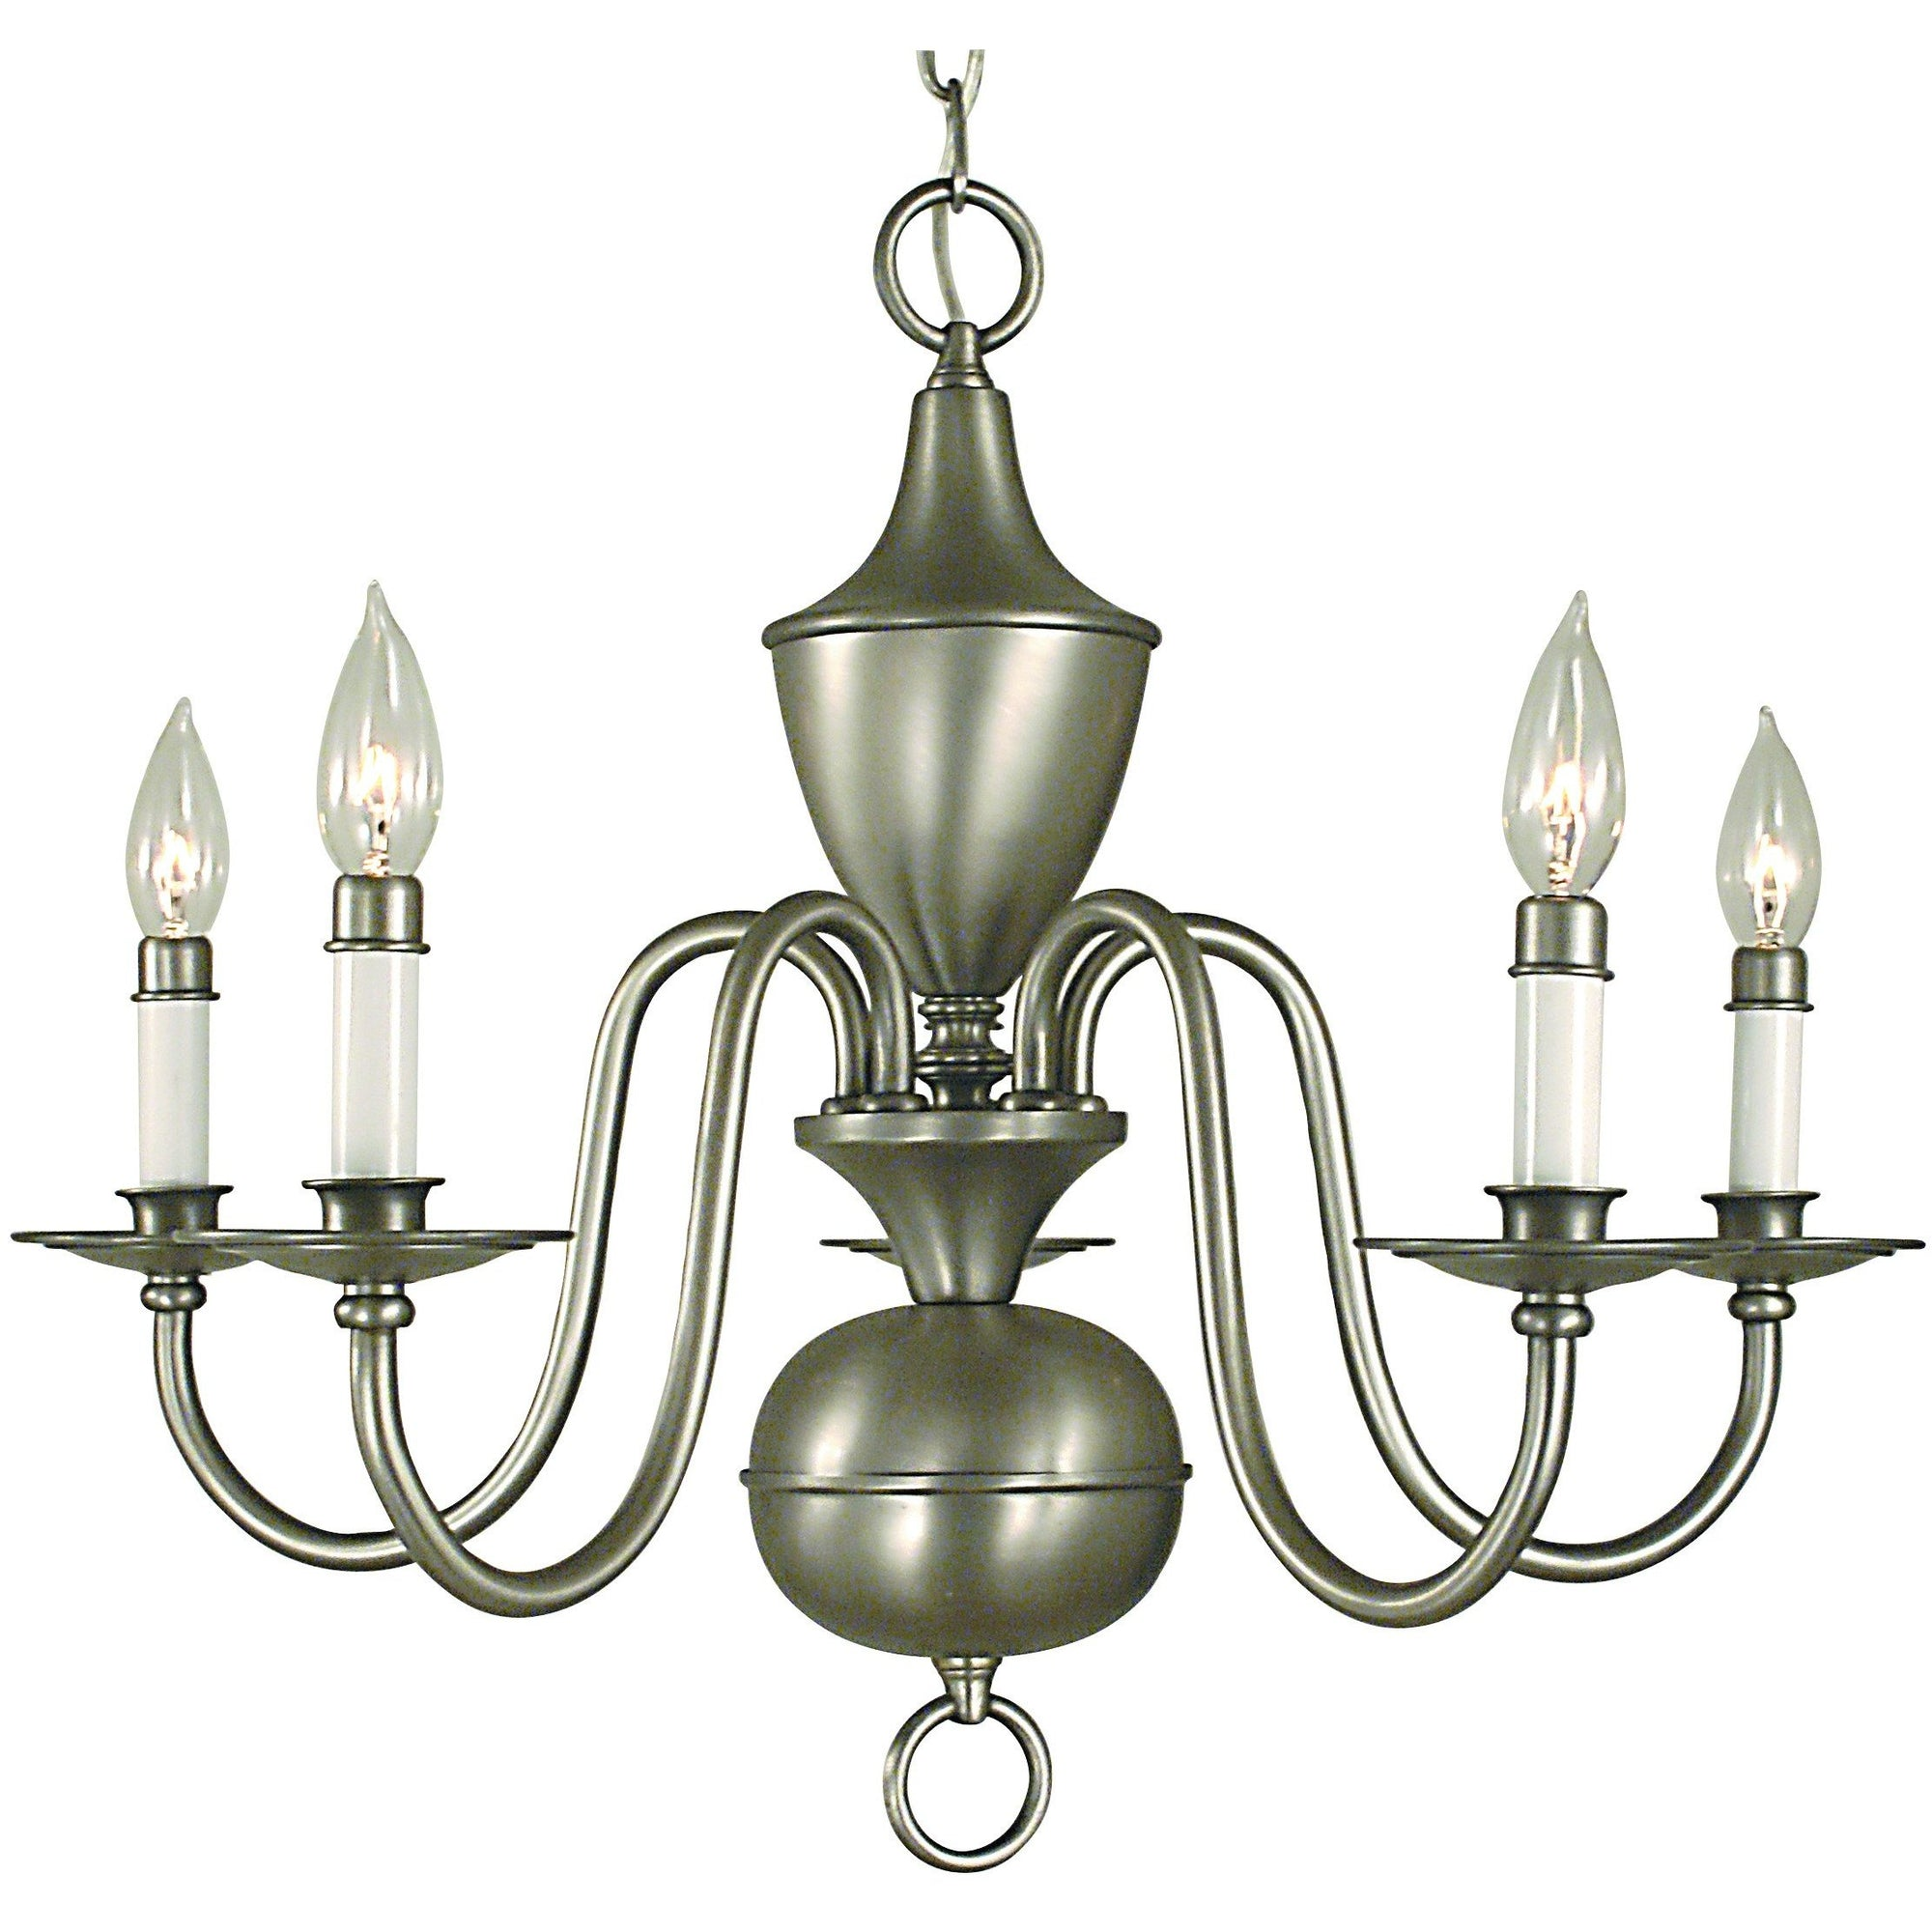 Framburg Chandeliers Satin Pewter 5-Light Satin Pewter Jamestown Dining Chandelier by Framburg 2525